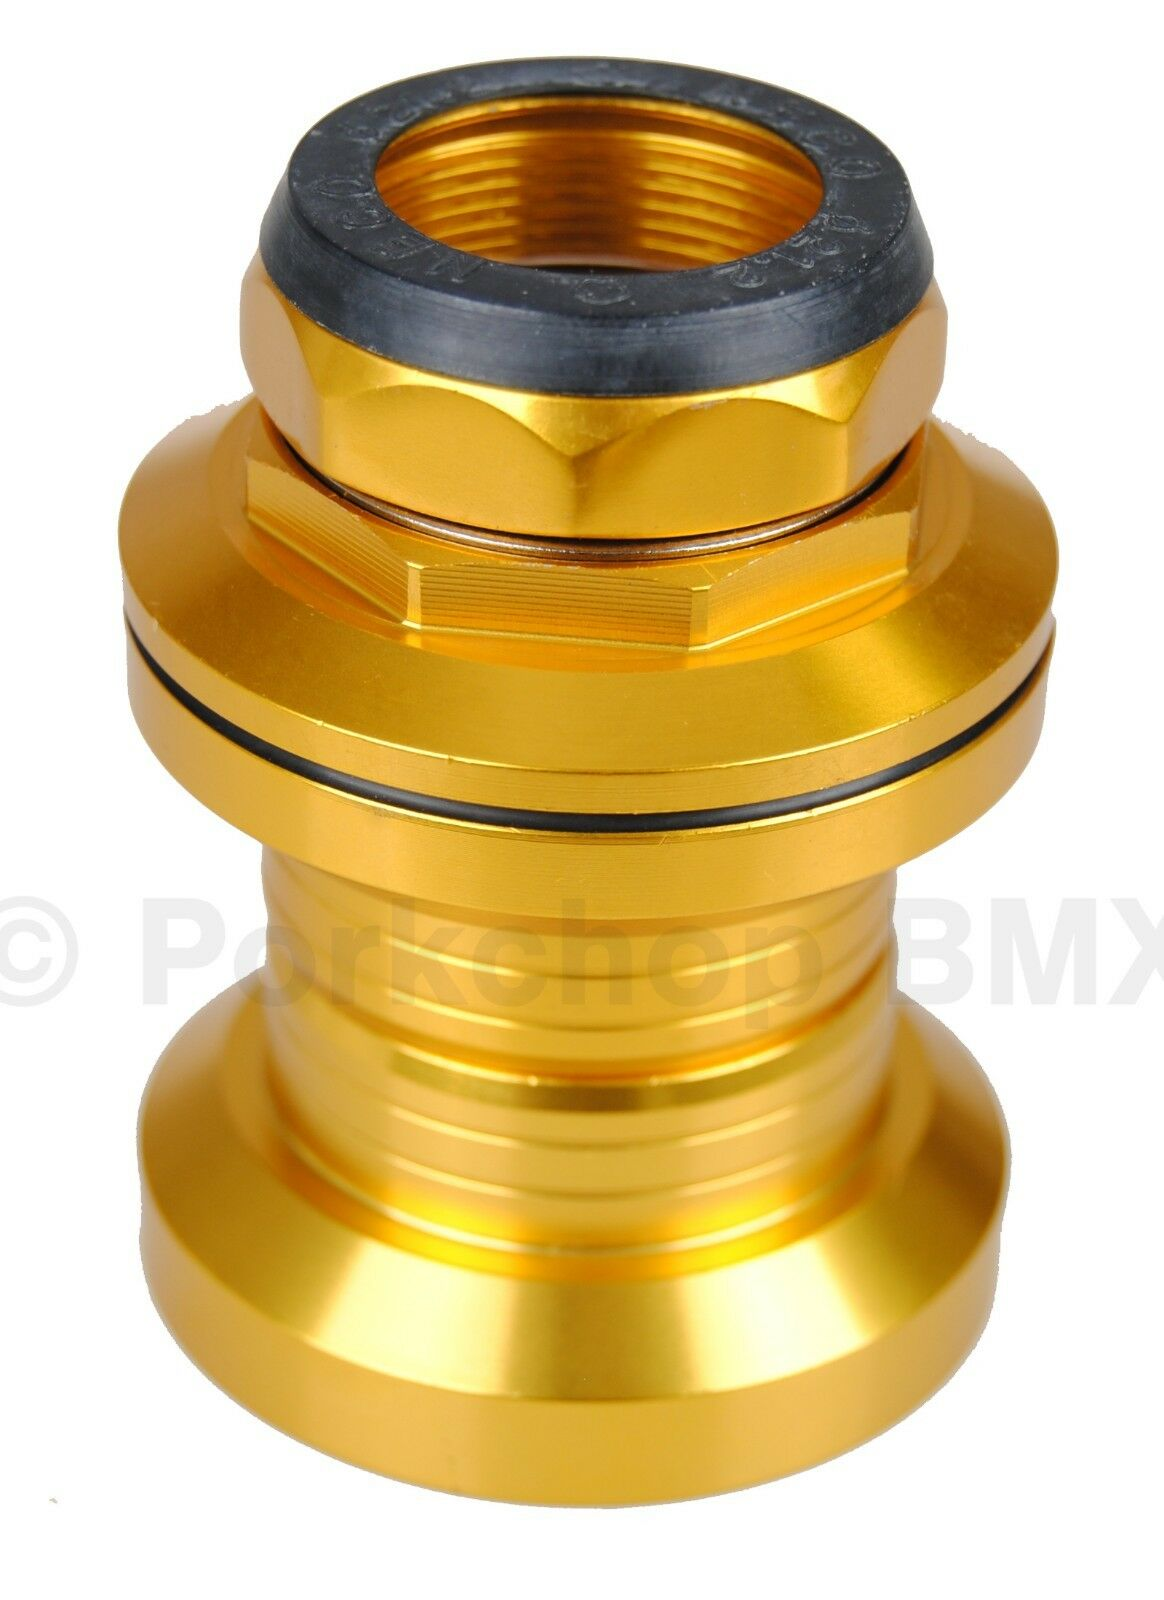 Aluminum alloy old school BMX bicycle headset 1   threaded 32.5mm cups gold  free and fast delivery available